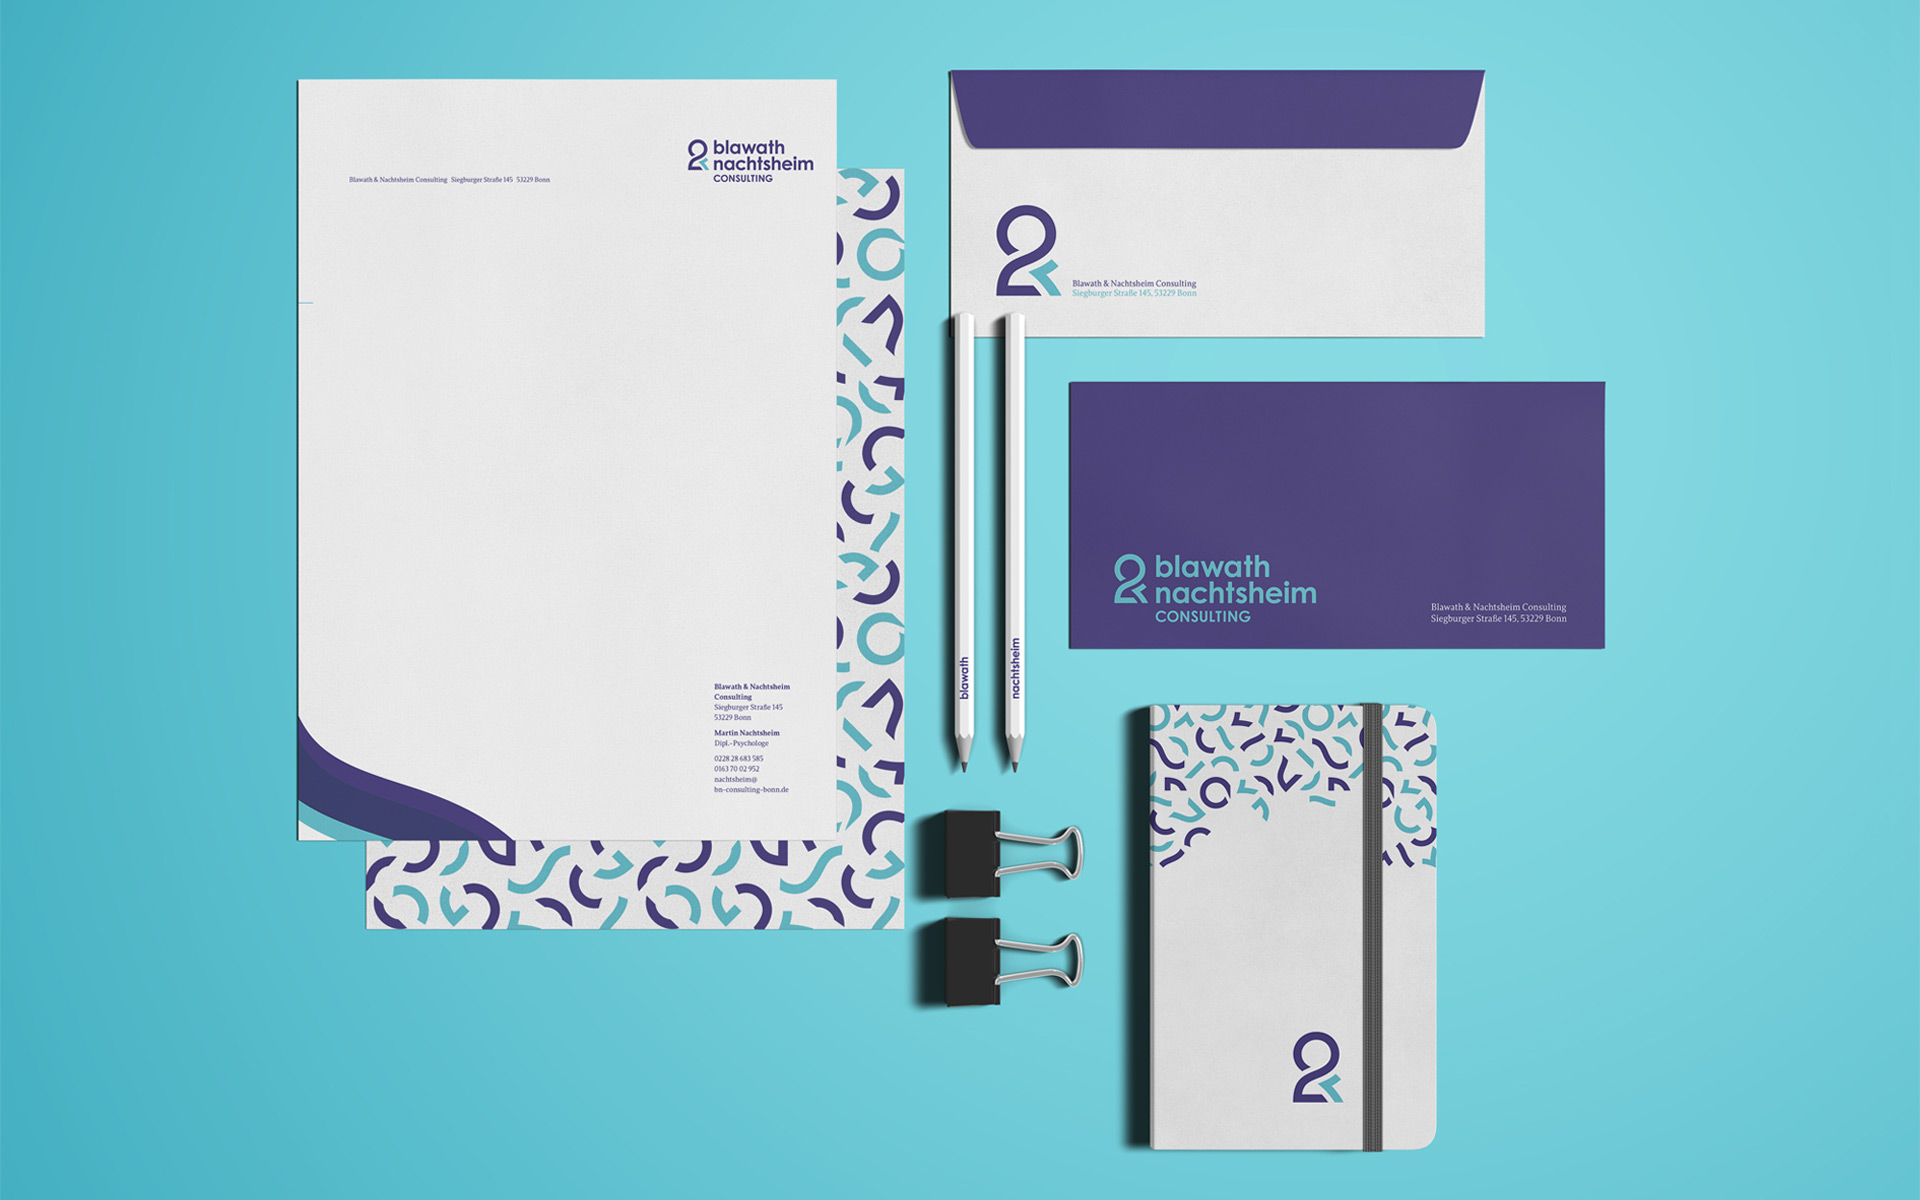 Blawath & Nachtsheim Consulting Corporate Design, Stationery